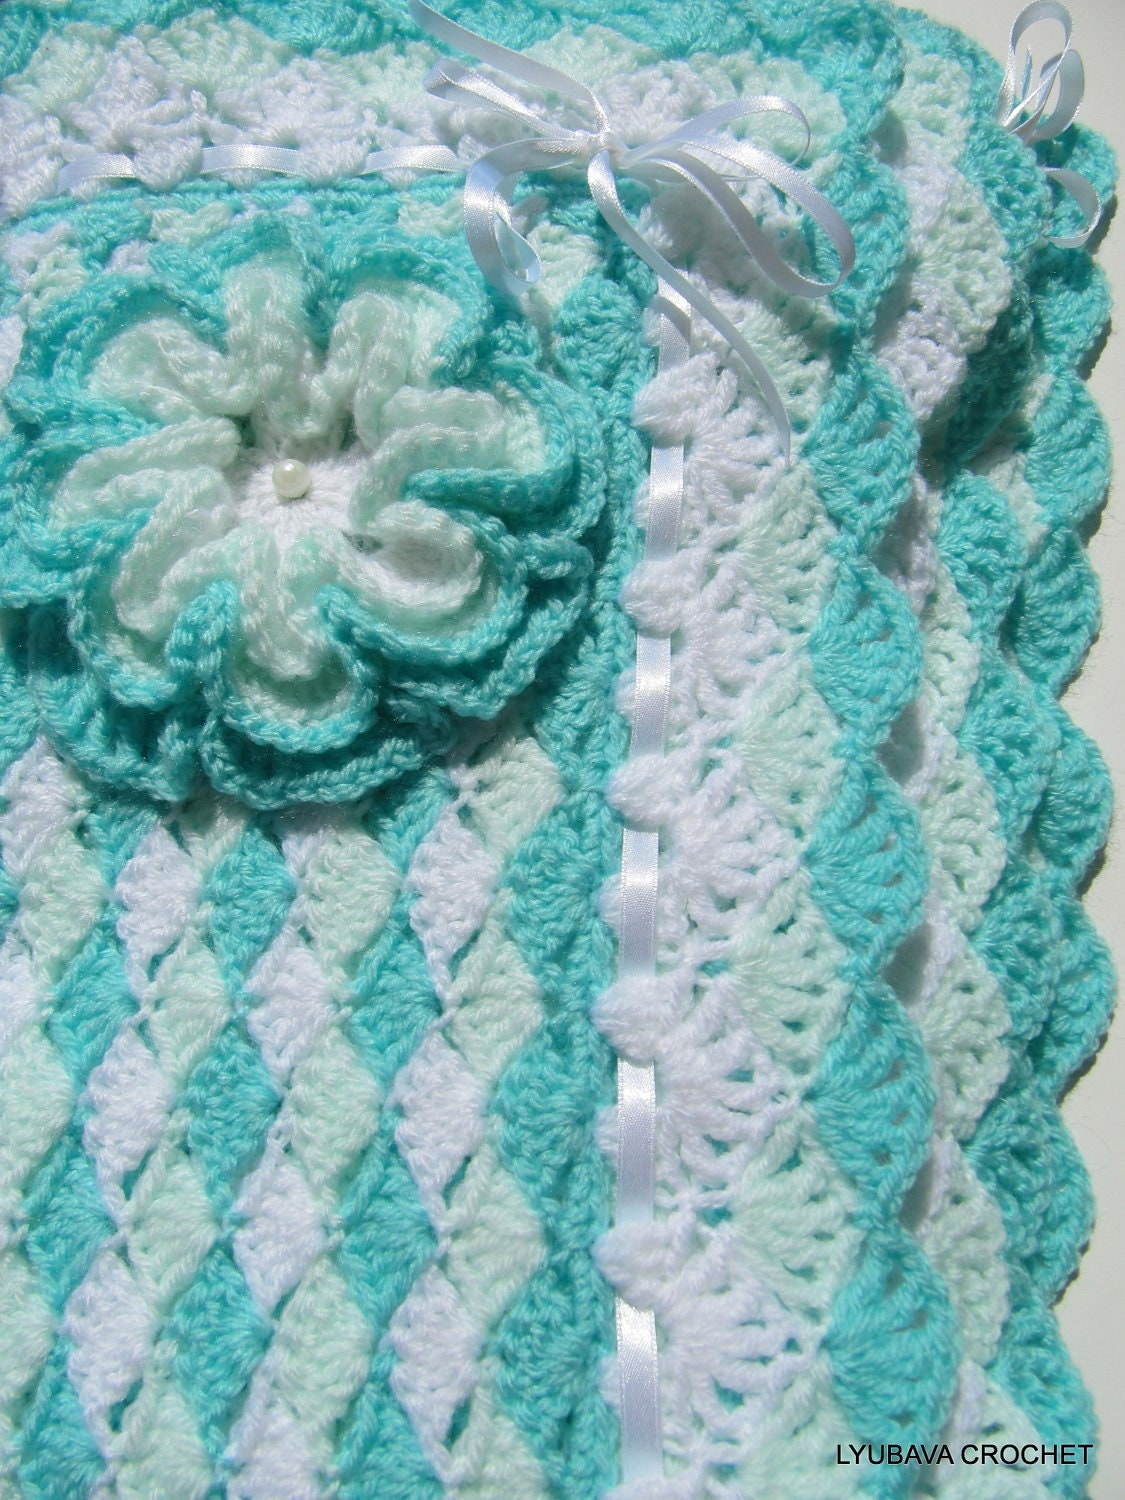 Crocheting Baby Blanket : CROCHET PATTERN Baby Blanket Turquoise With by LyubavaCrochet